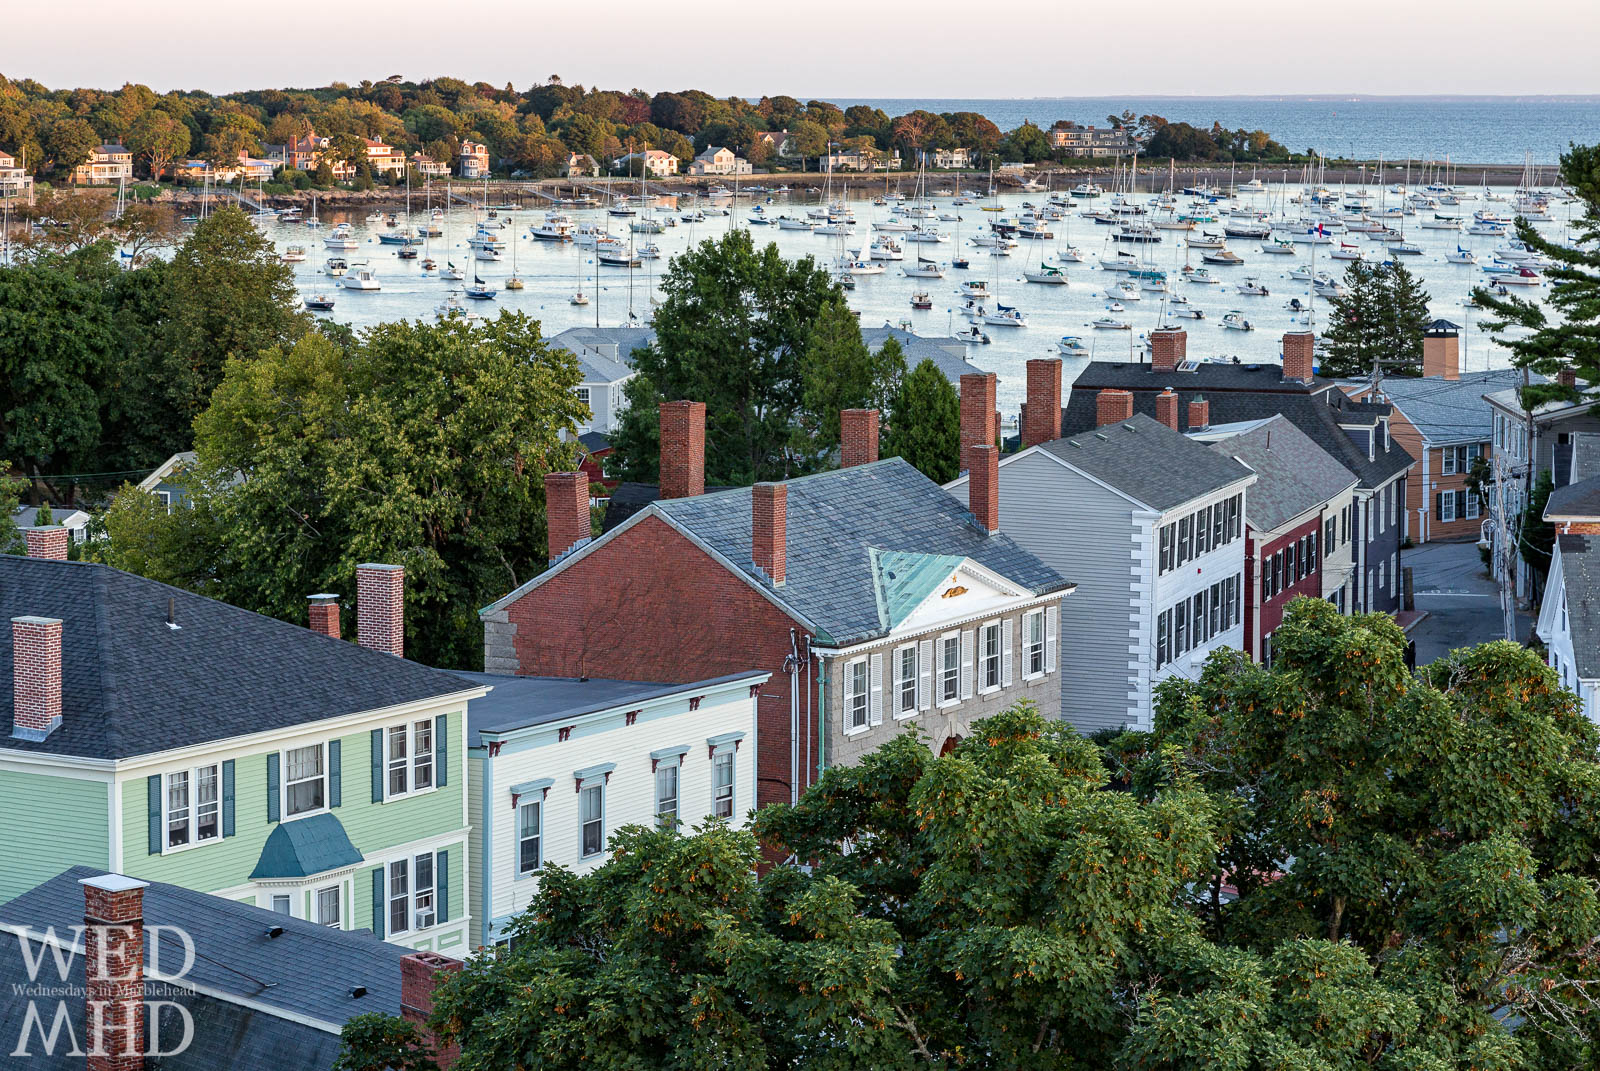 View of Hooper Street and Harbor from atop St Michaels Steeple